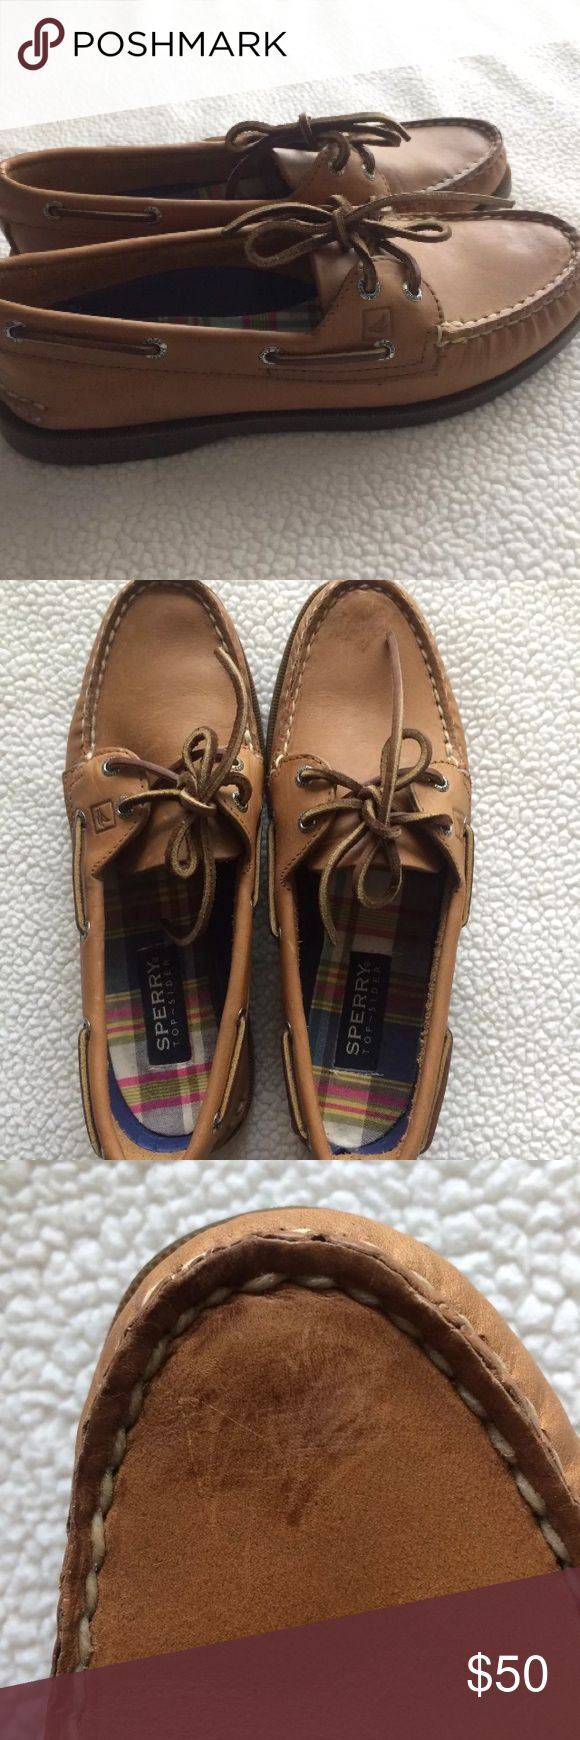 NWOT Sperry Top-Sider Women's Brown Boat Shoes Sz8 Super cute brown Sperry Top-Siders! There is some damage to the tip of the right shoe but is not very noticeable unless you look really close. These have never been worn and are ready to find their perfect home! Sperry Top-Sider Shoes Moccasins